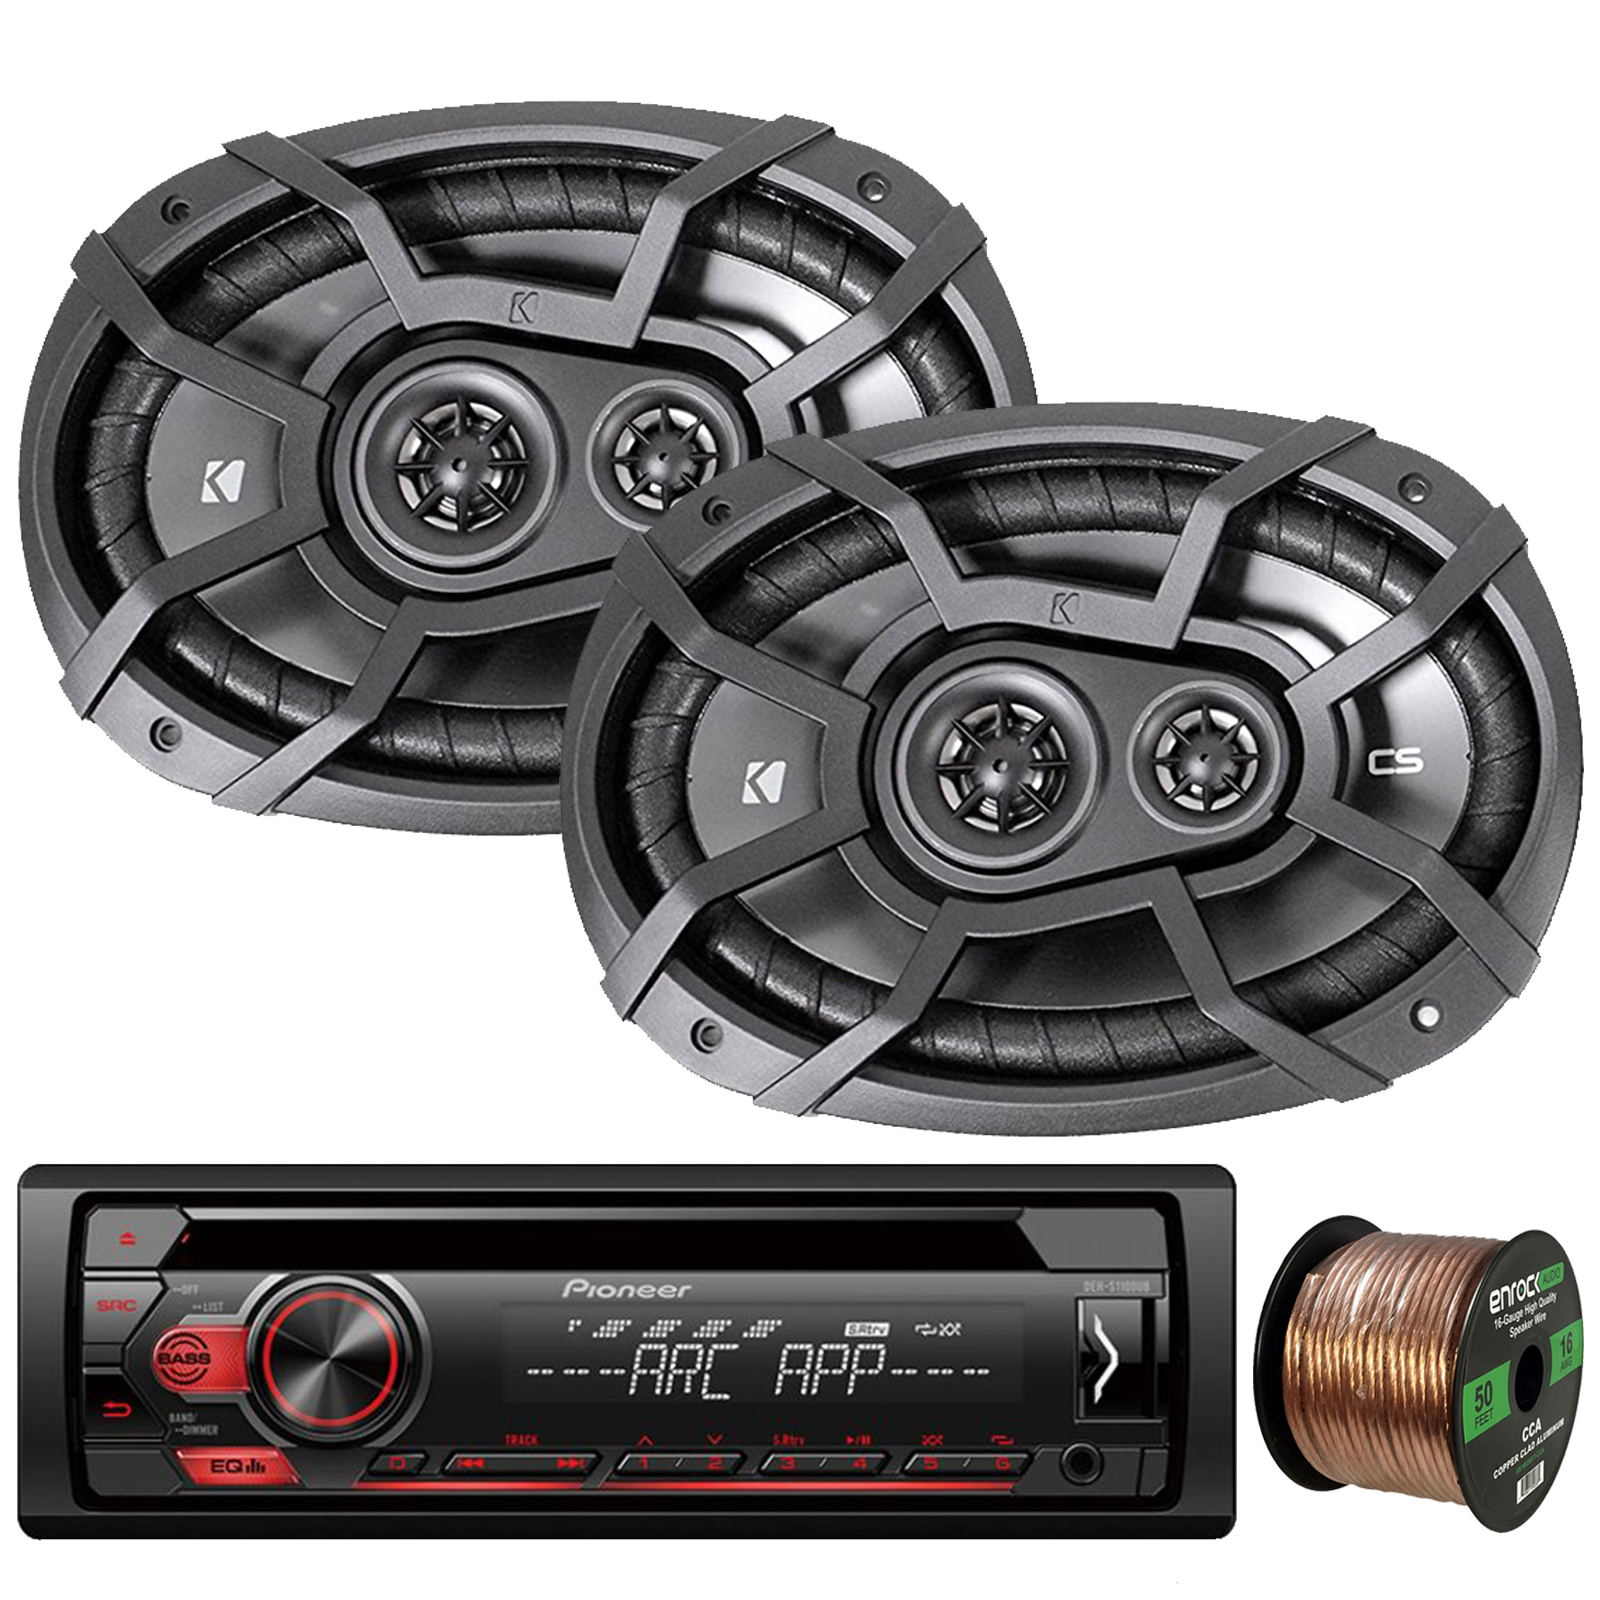 "Pioneer DEH-S1100UB Single-DIN CD Player AM/FM Car Stereo Receiver, 2 x Kicker CS-Series CSC693 6x9"" 3-Way 4-Ohm Car Audio Speakers, 16-Gauge 50Ft. Speaker Wire"